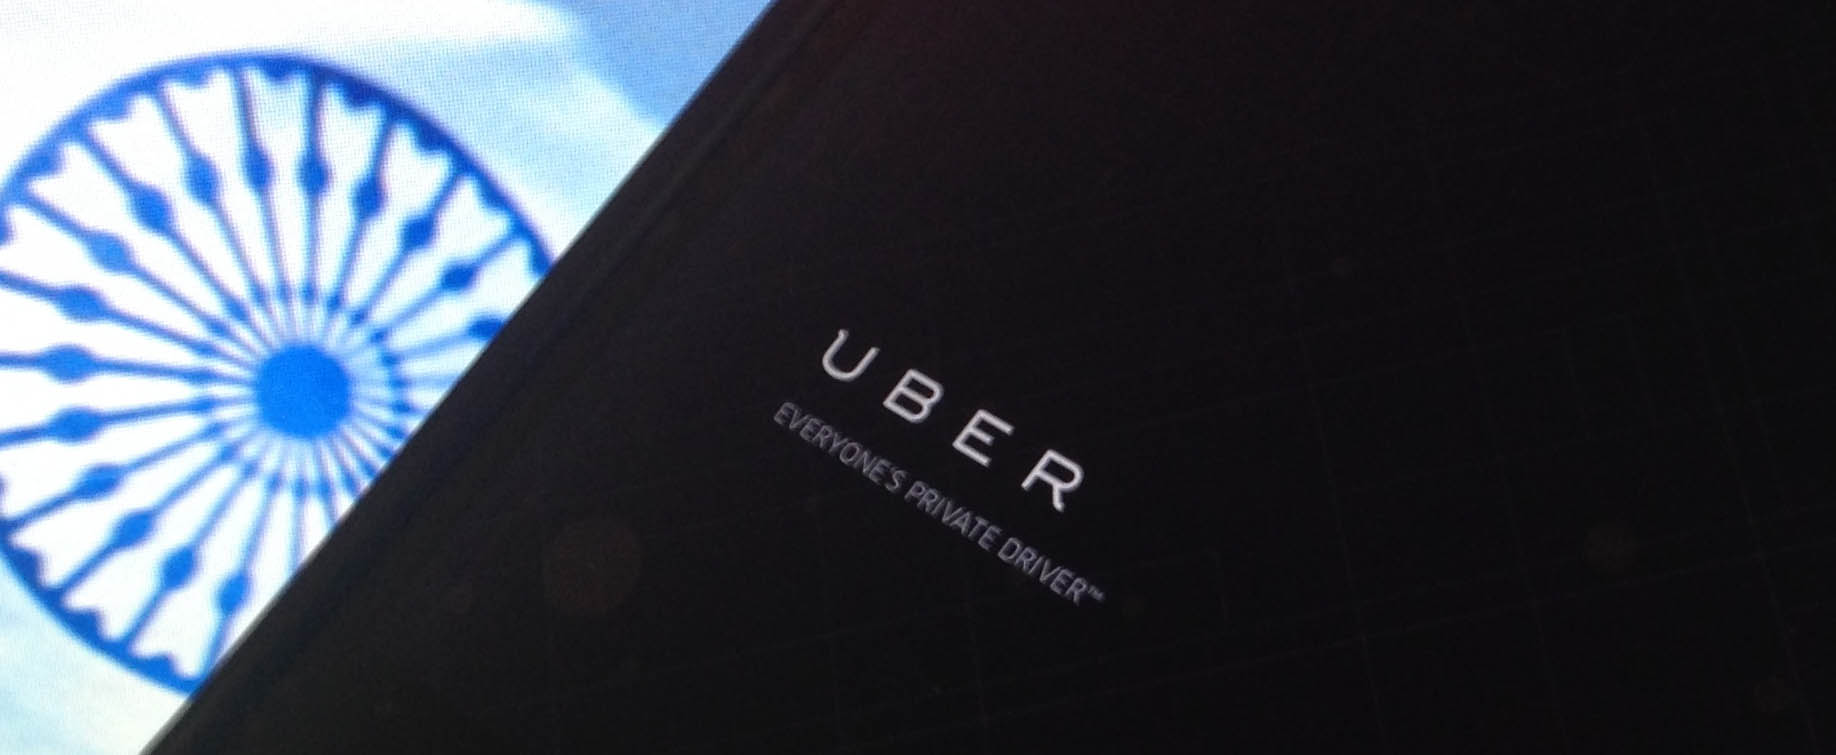 Uber's Panic Button is Now Live in India